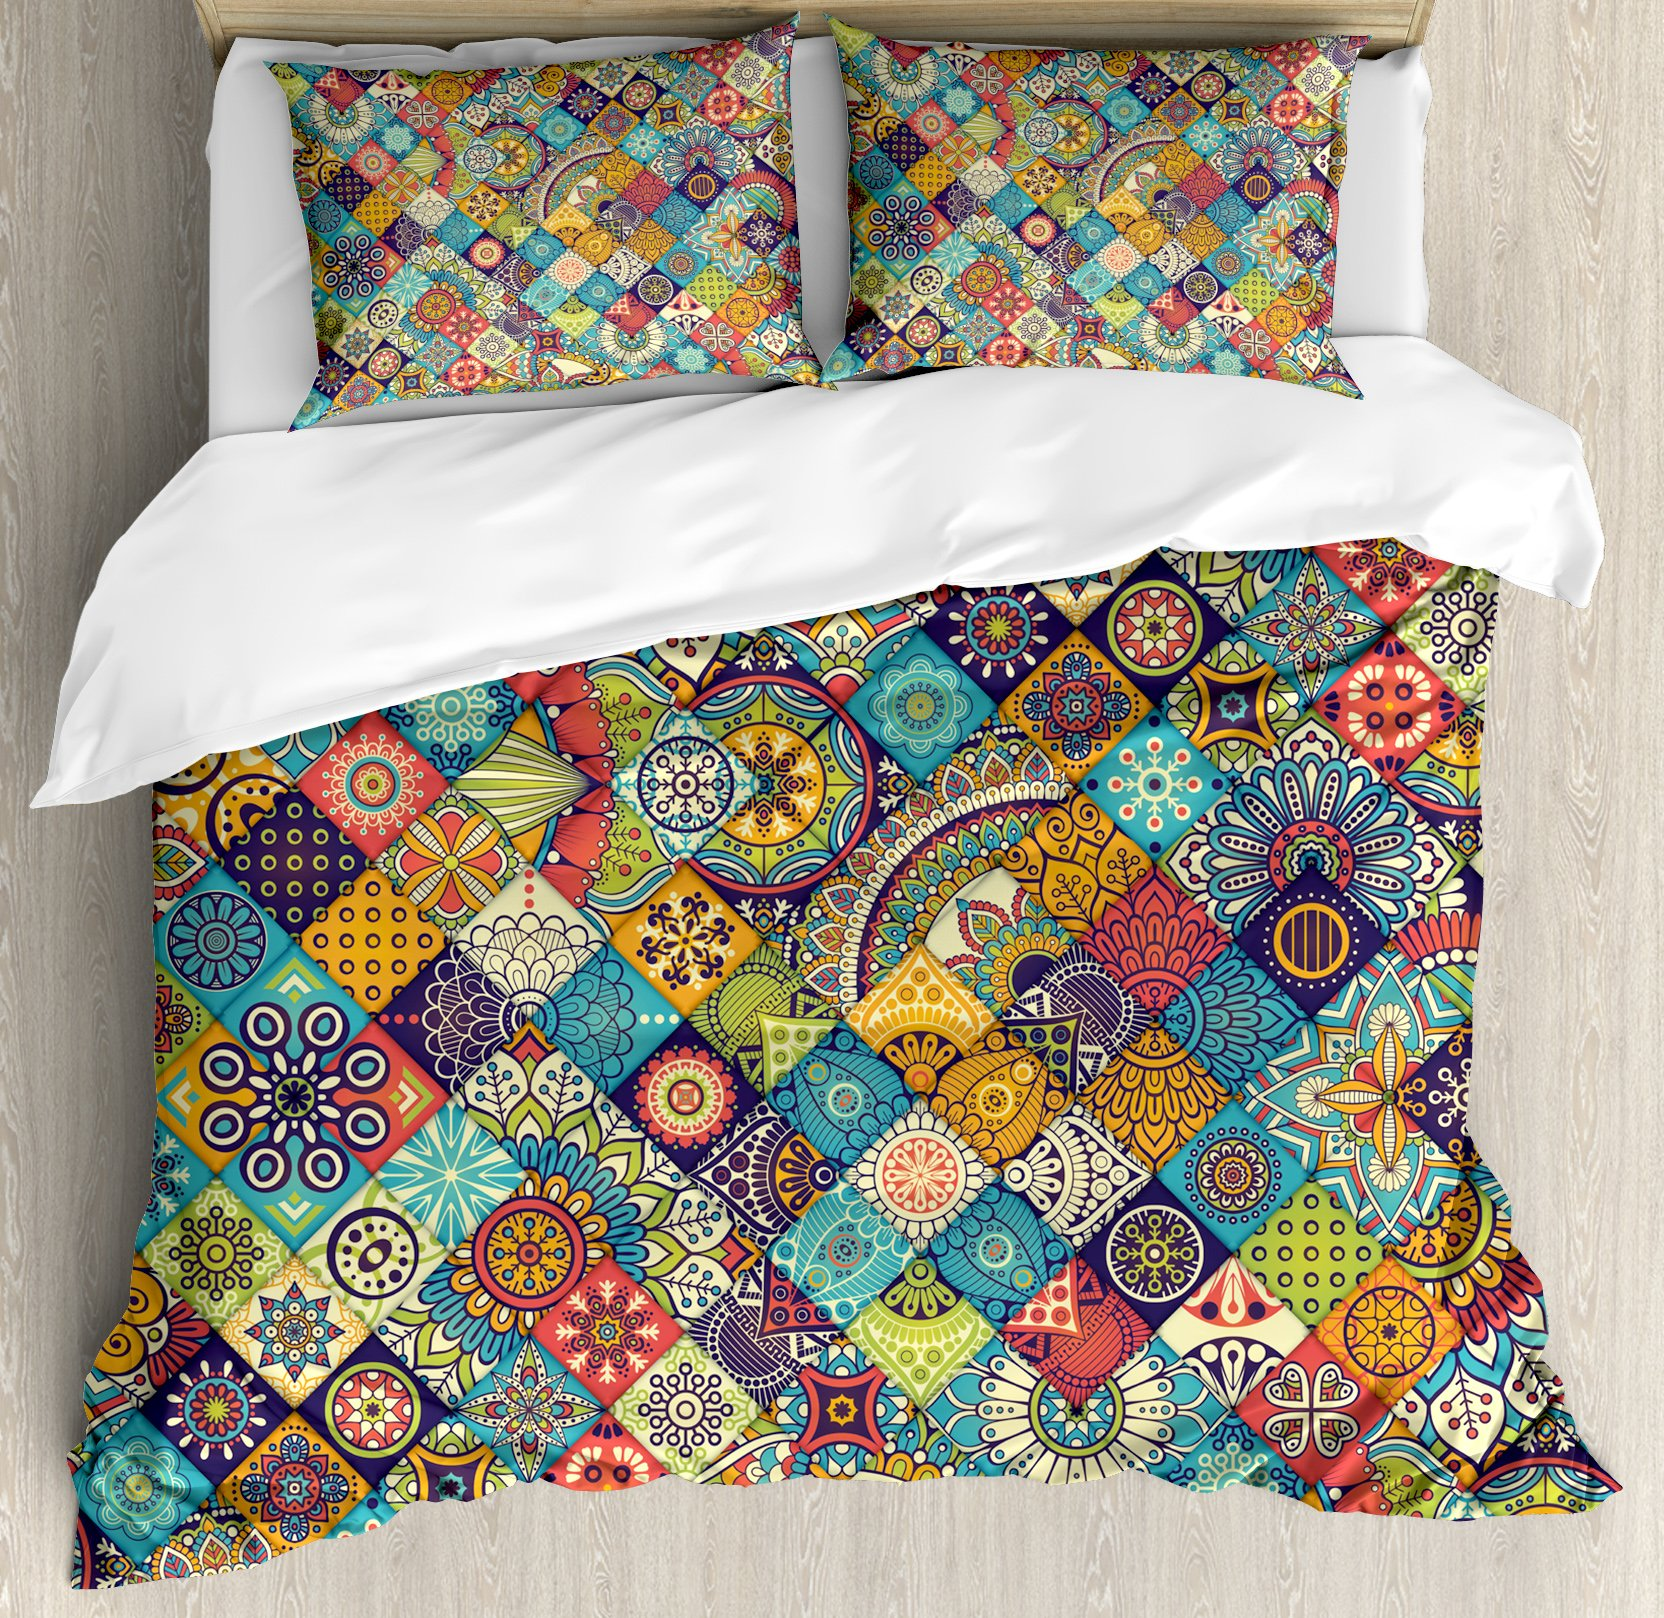 Ambesonne Bohemian Duvet Cover Set King Size by, Checkered Pattern with Ethnic Ornamental Floral Figures Ethnic Folk Art Abstract, Decorative 3 Piece Bedding Set with 2 Pillow Shams, Multicolor